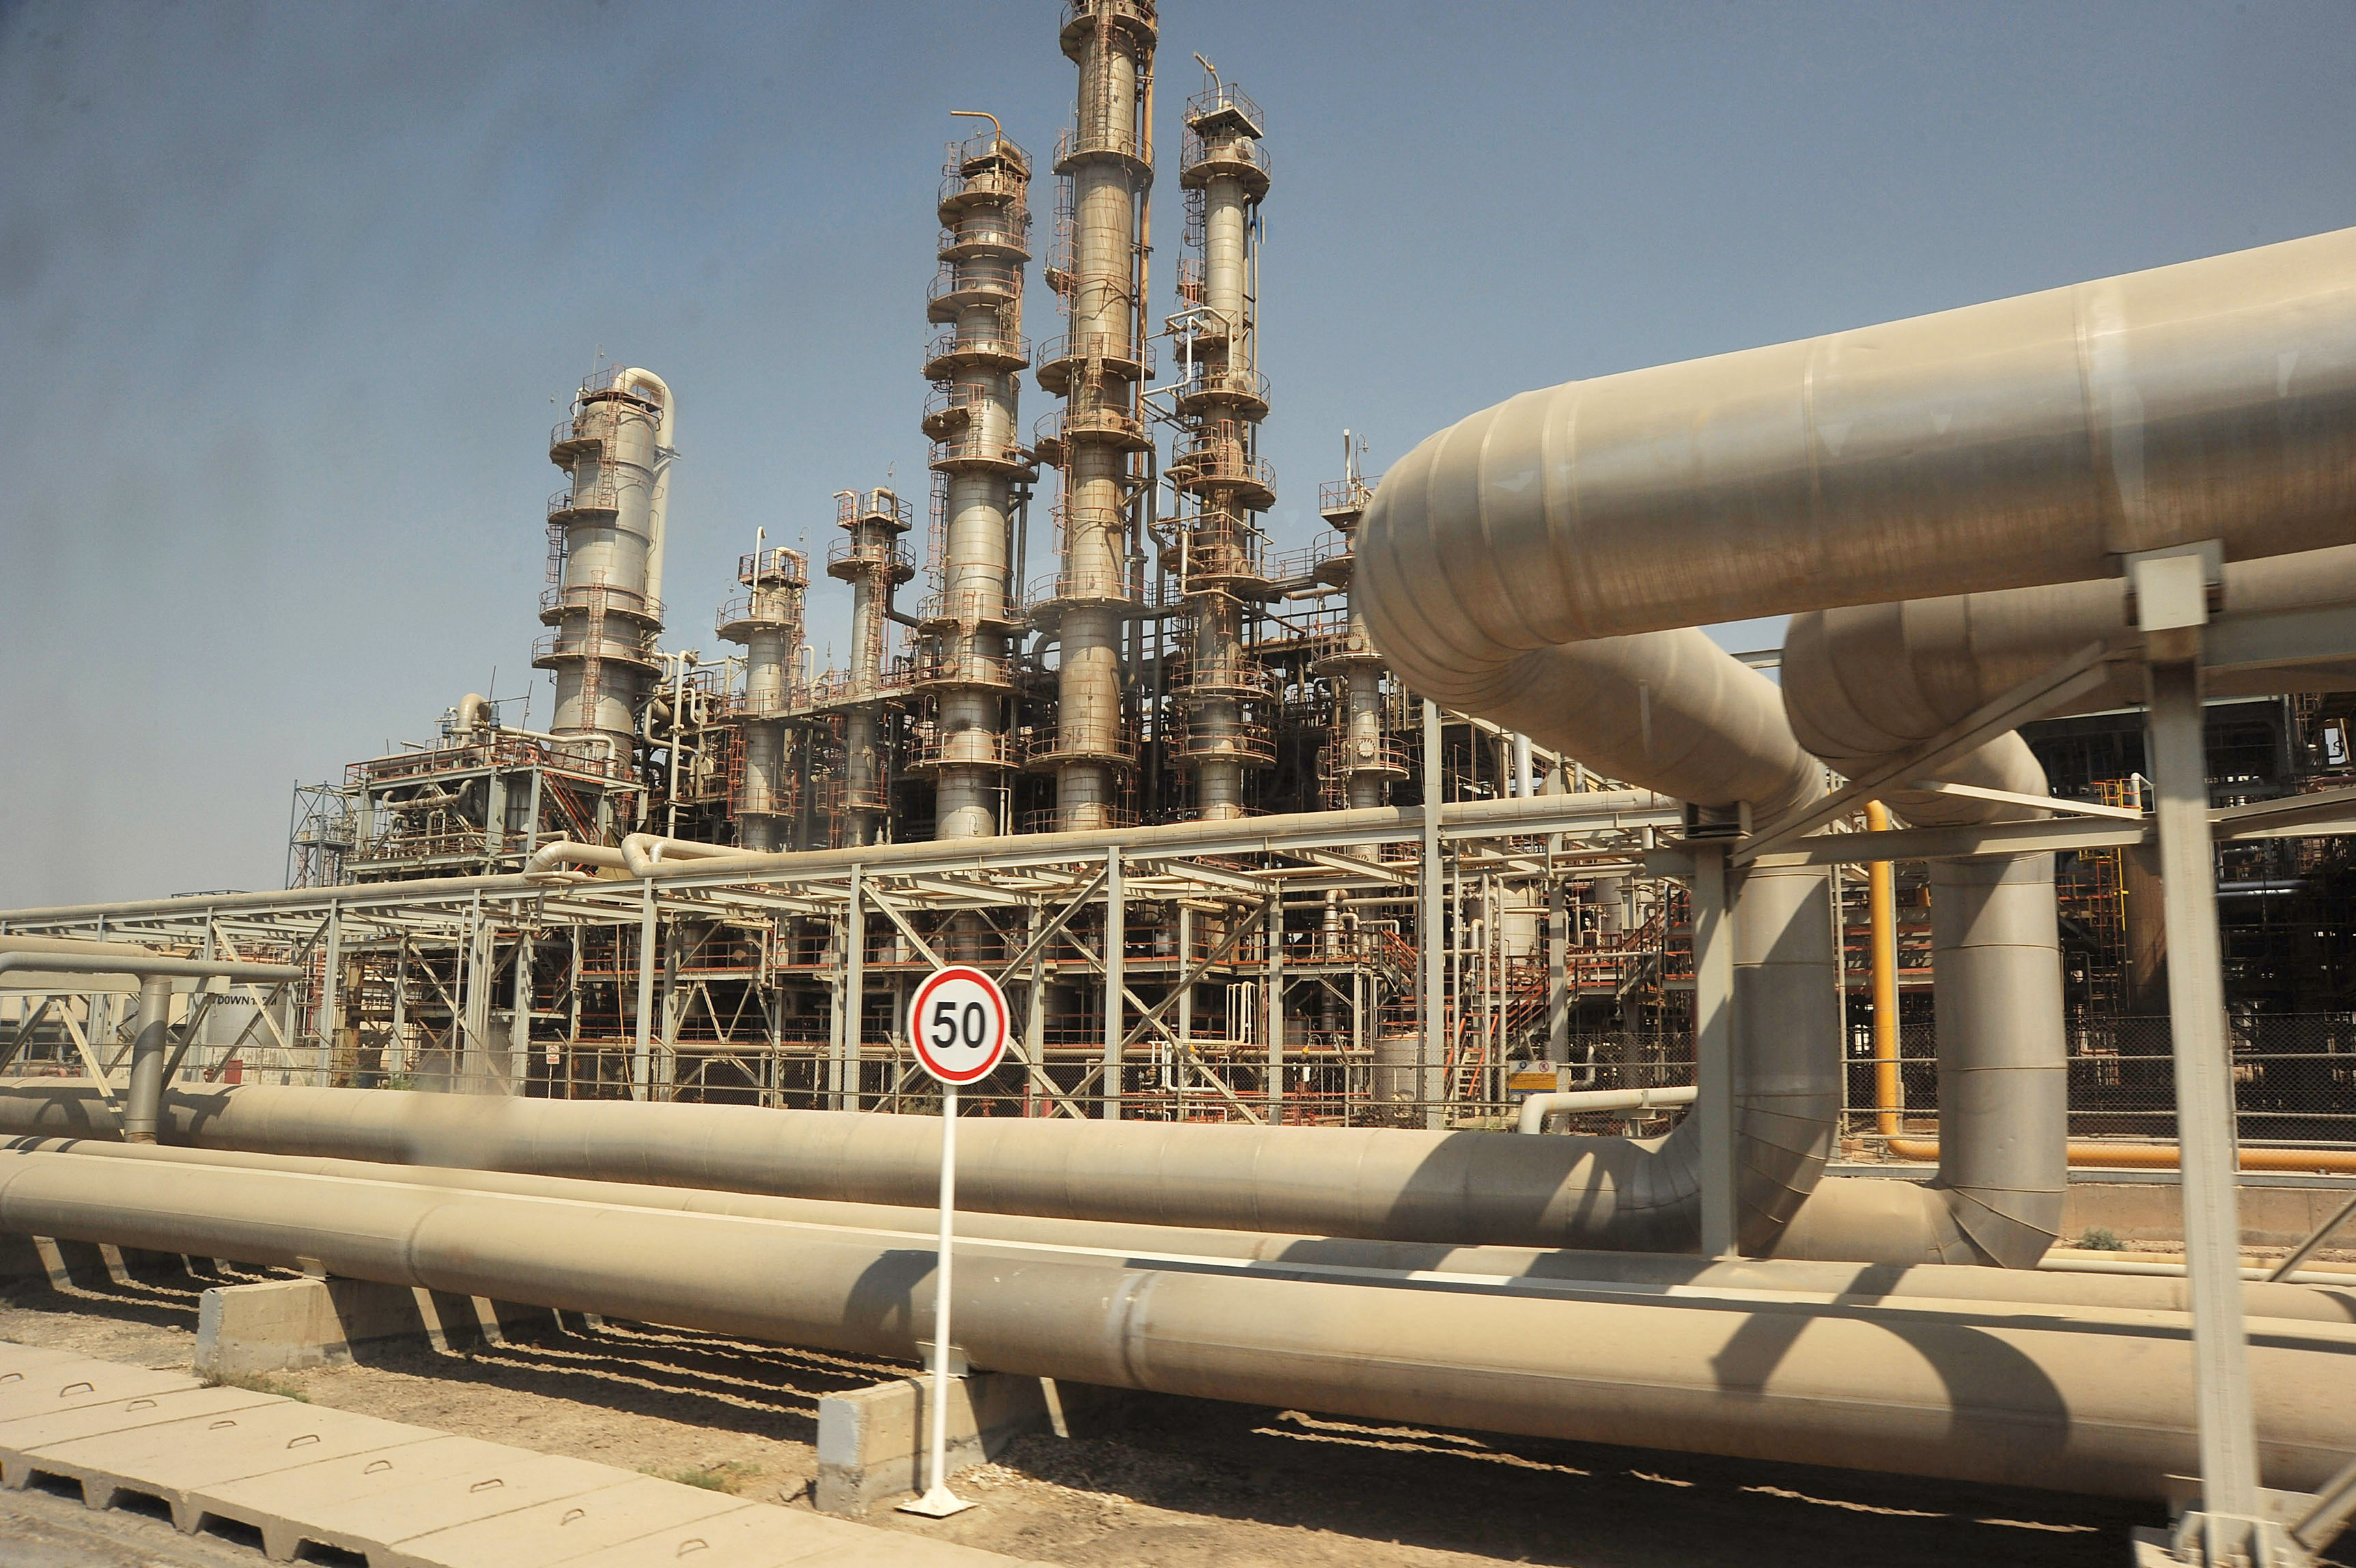 View of Iran's oil industry installations on September 28, 2011 in Mahshahr, Khuzestan province, southern Iran.